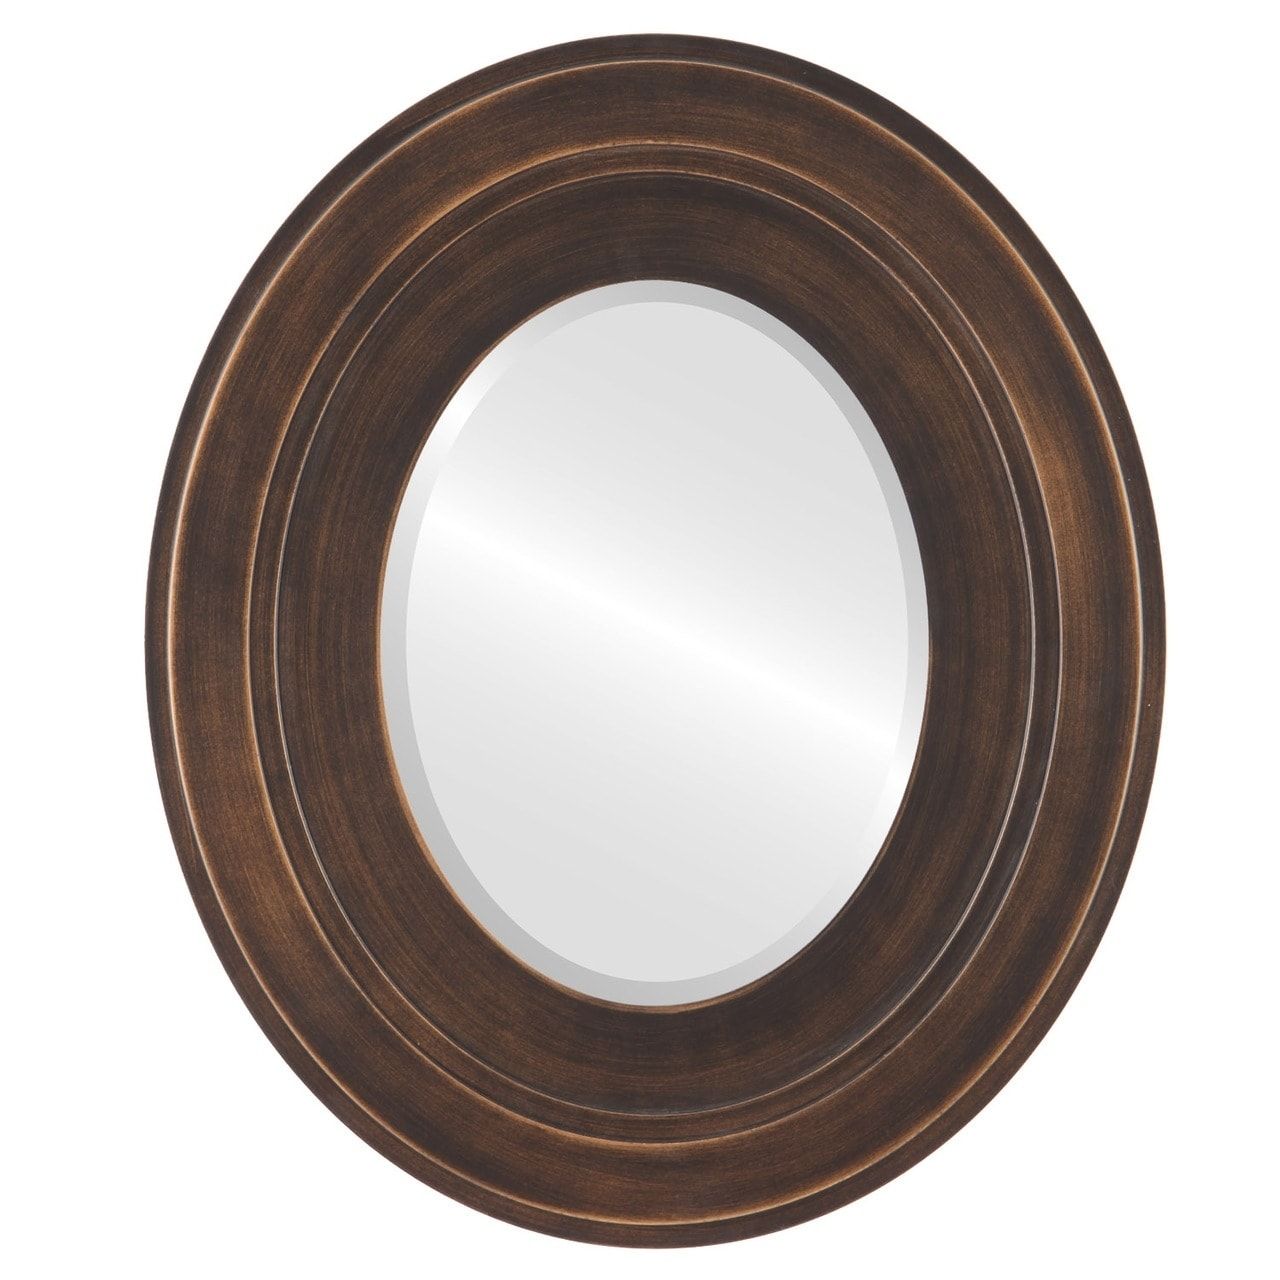 The Oval and Round Mirror Store Palomar Framed Oval Mirror in Rubbed Bronze Antique Bronze by Overstock